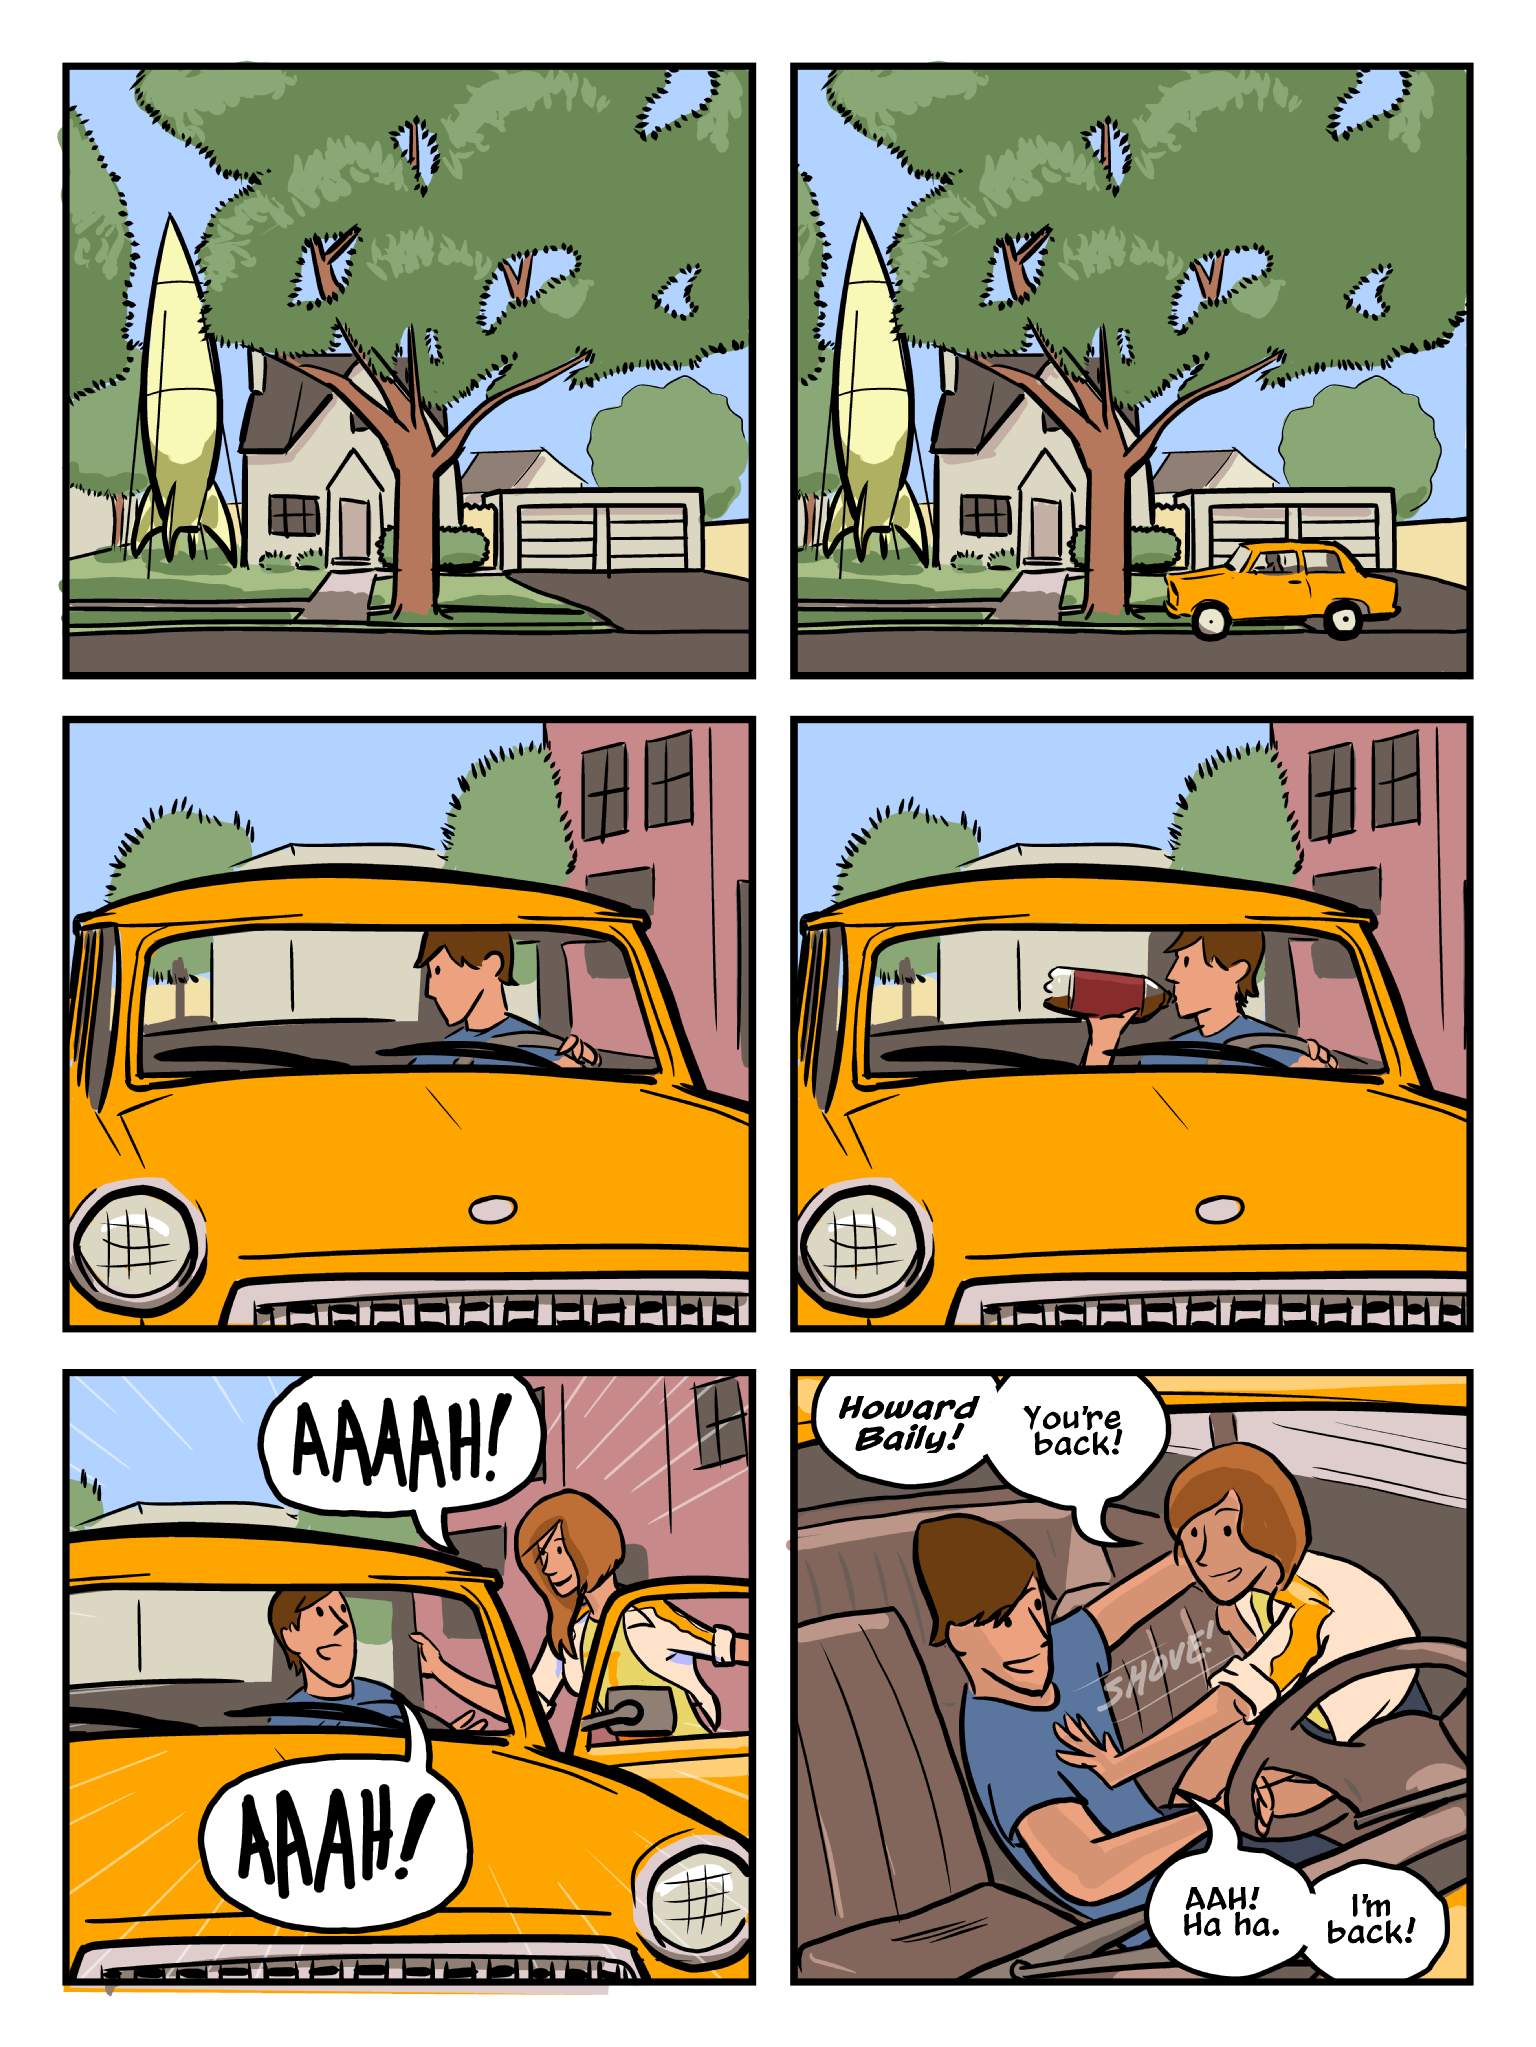 """""""Oh, It's the End of the World"""" page 4. Howard pulls his car up to a house with a large green rocket ship docked in the side yard. After taking a swig from a 2 L bottle of soda, Erin appears next to his car, throws open the car door, and dives in to give him a hug. """"Howard Baily! You're back!"""" she shouts. """"I'm back."""" he laughs."""